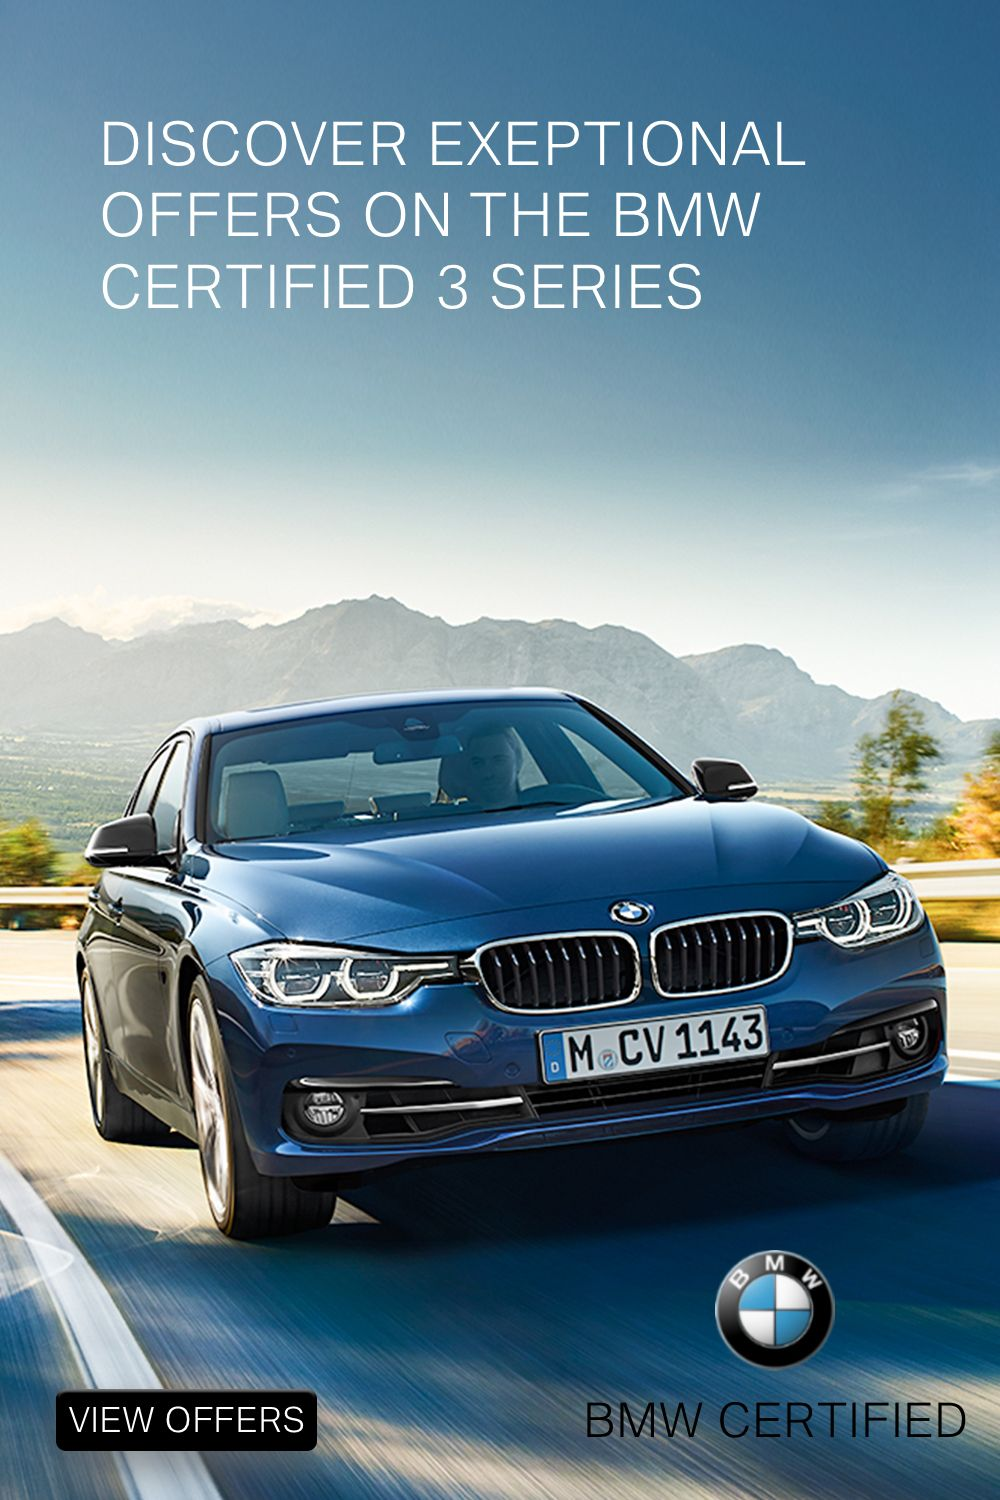 The Bmw Certified 3 Series Bmw Certified Pre Owned Cars Dream Cars